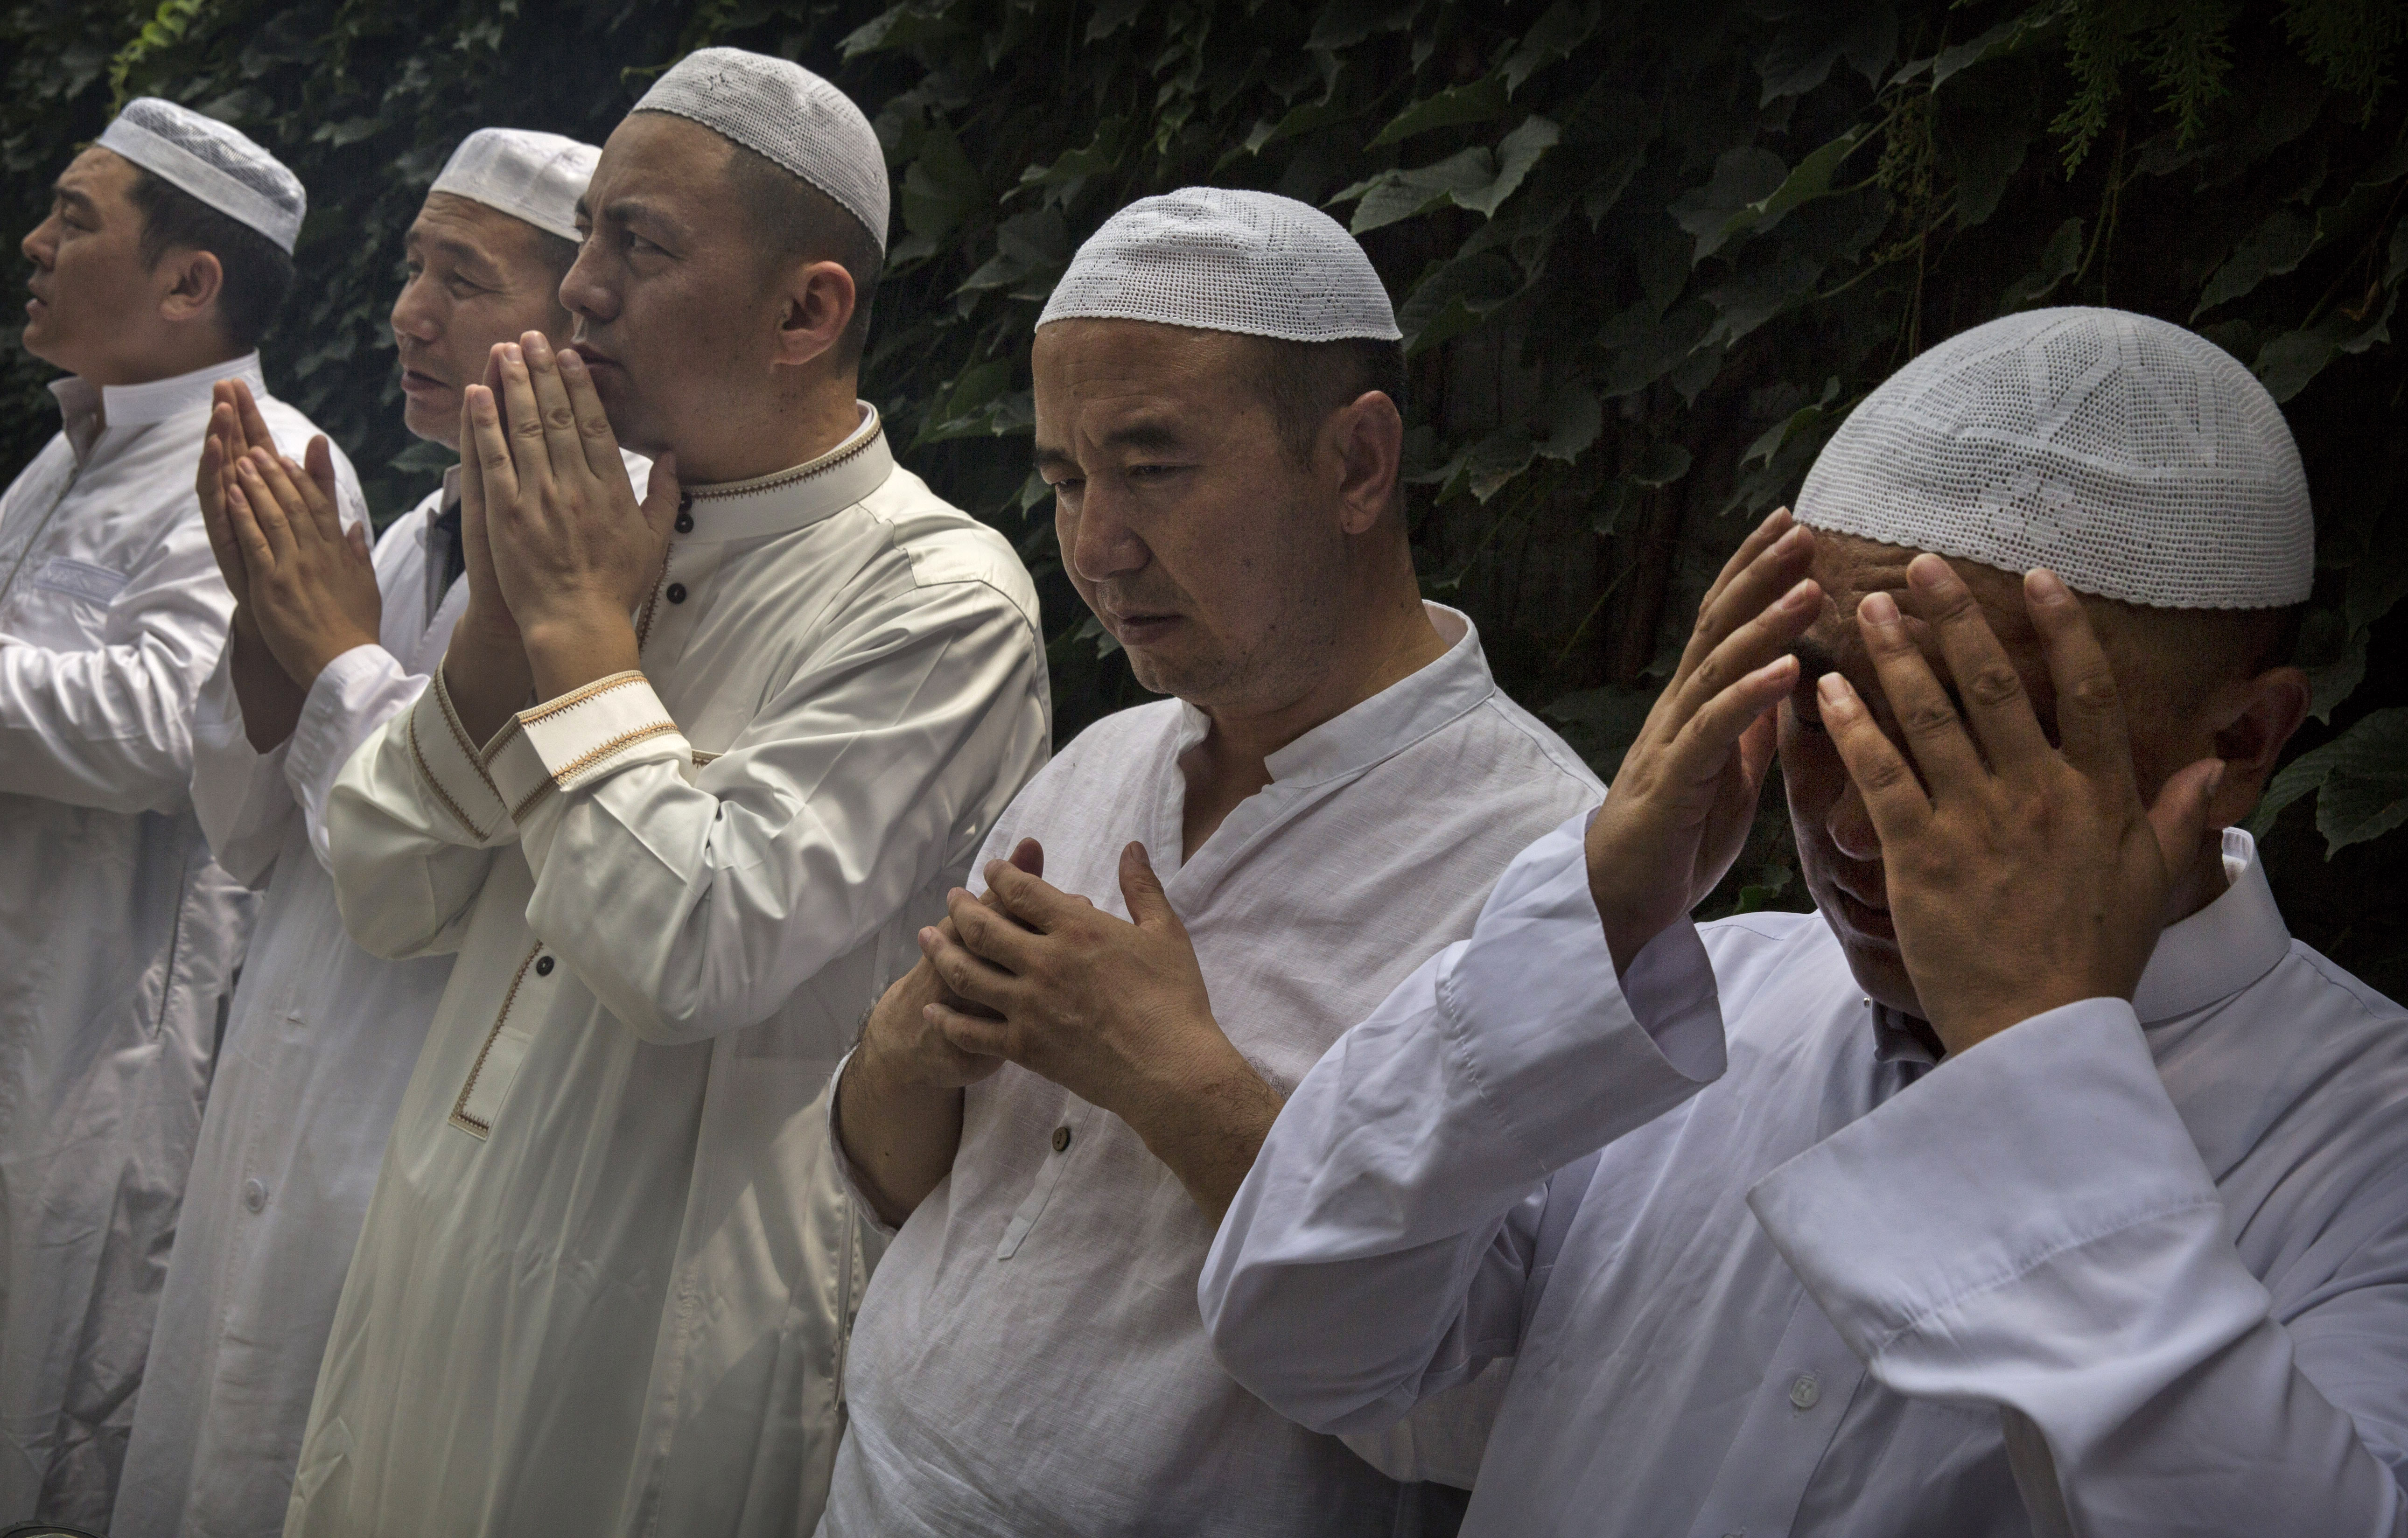 islam in china why beijing oppresses uighurs but not the hui time 2